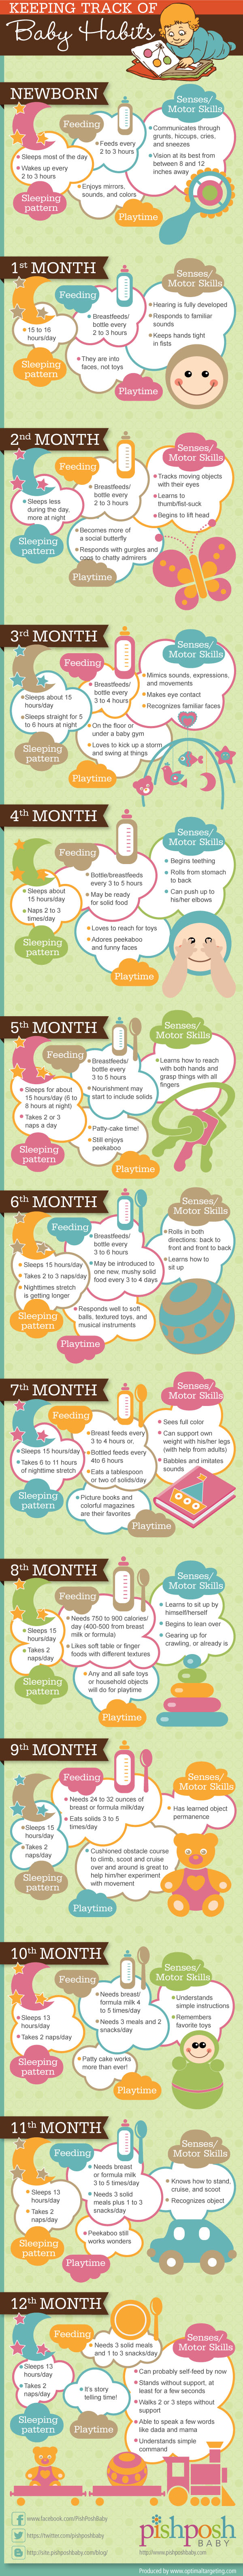 infographic-baby-stages